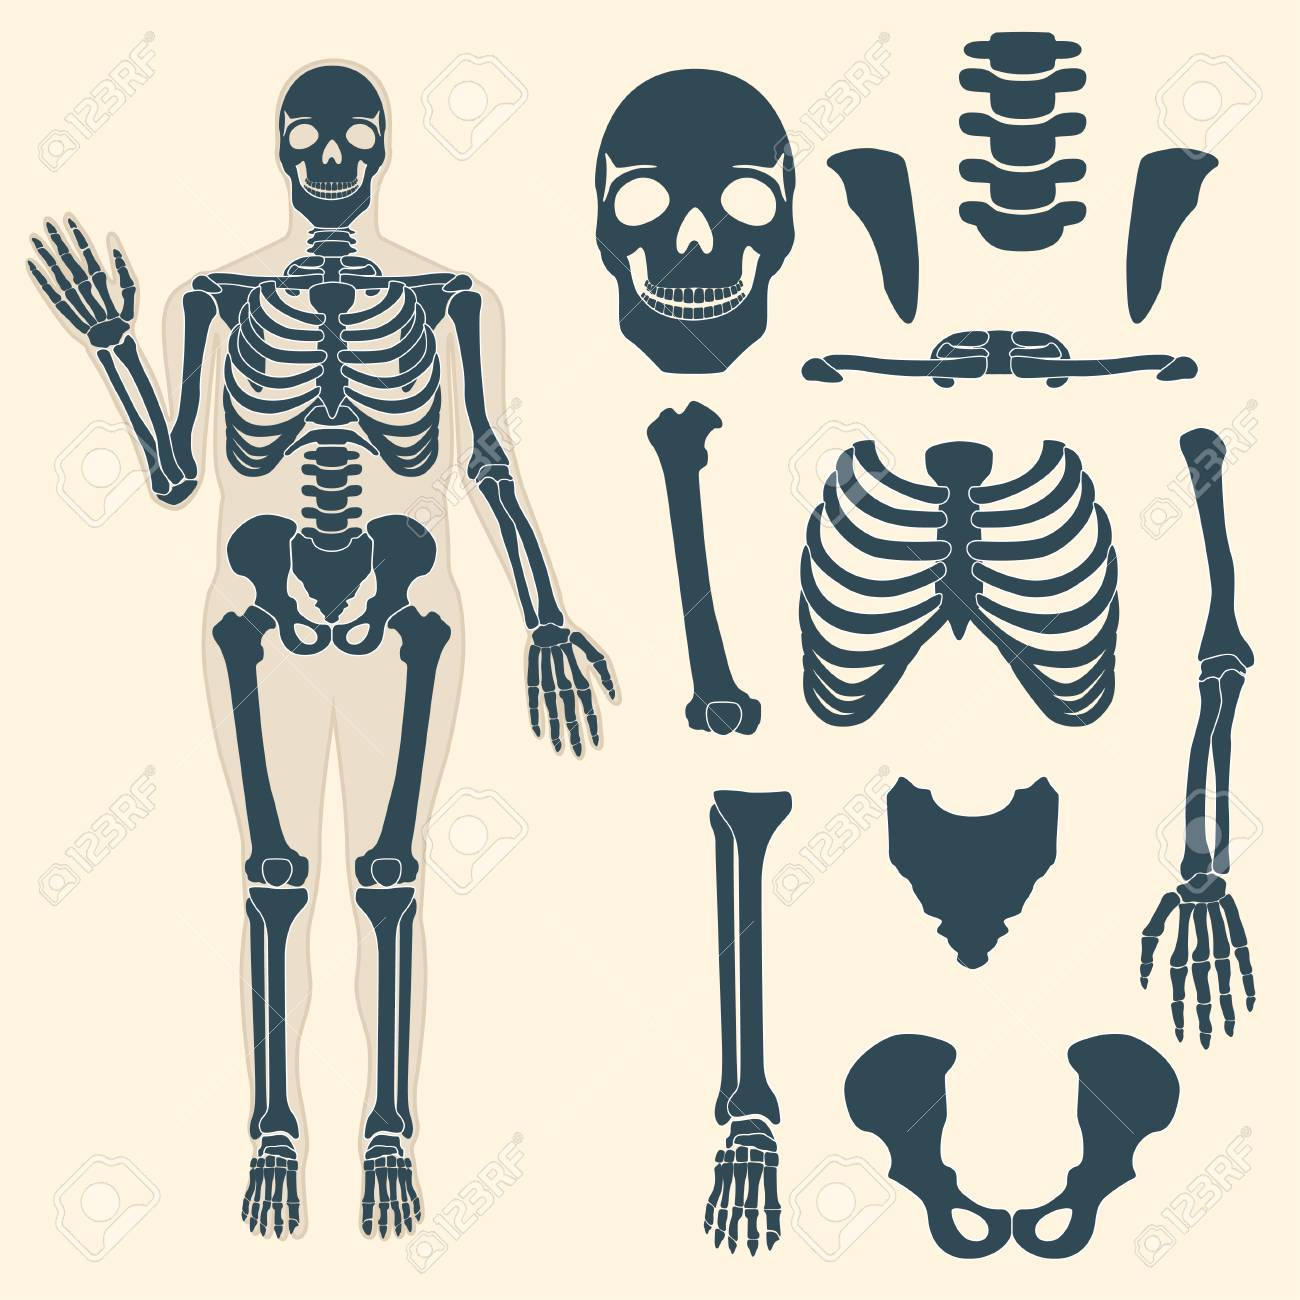 Human Skeleton With Different Parts. Anatomy Of Human Body, Wrist ...